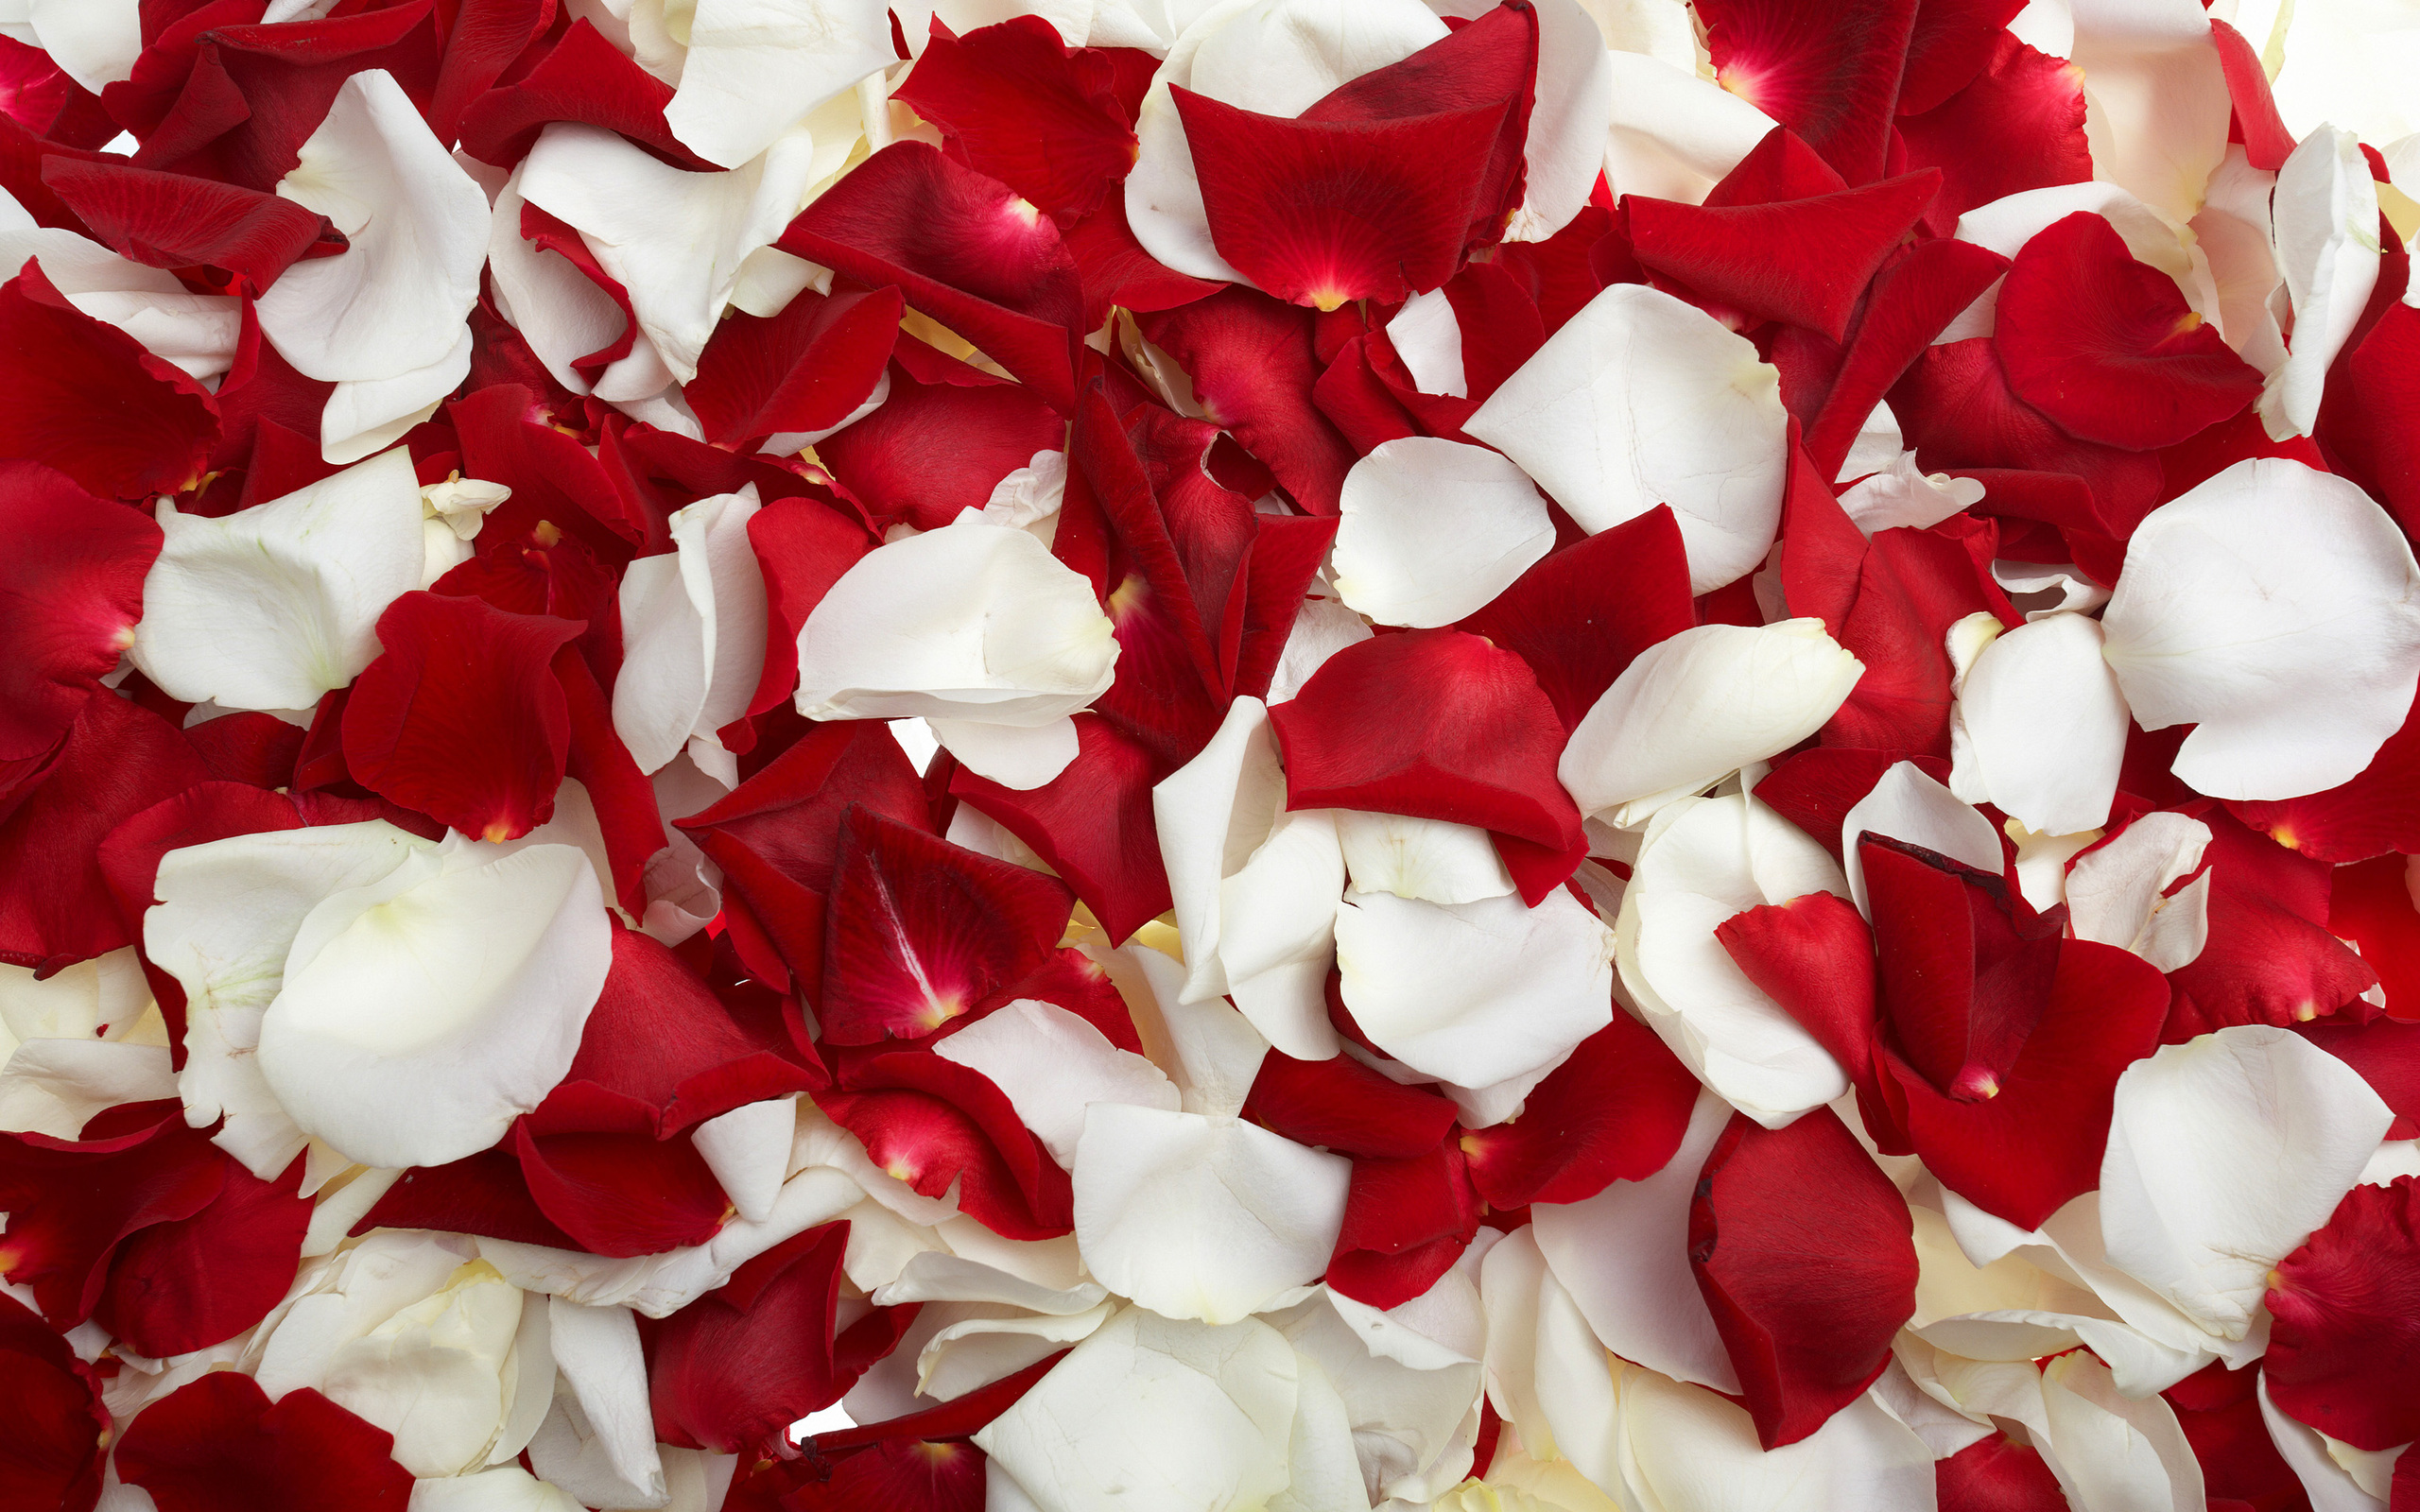 Flower Petal Wallpaper